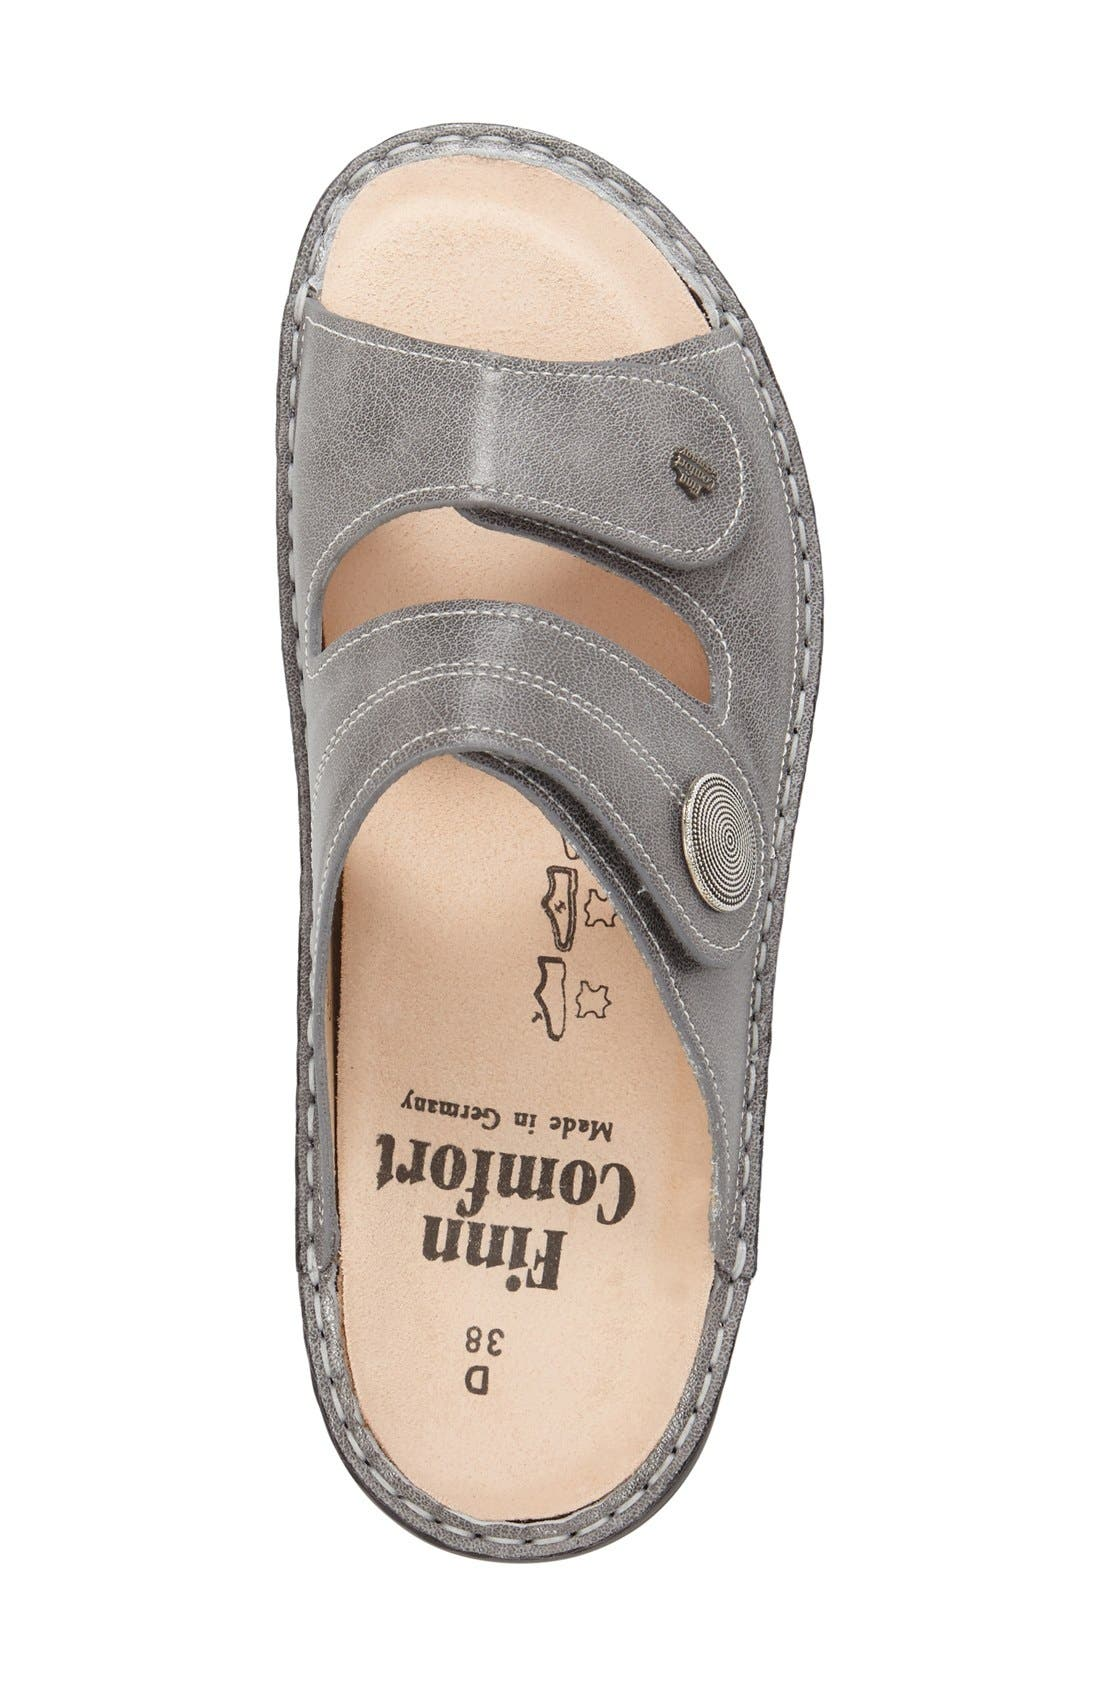 'Sansibar' Sandal,                             Alternate thumbnail 3, color,                             Grey Nappa Leather